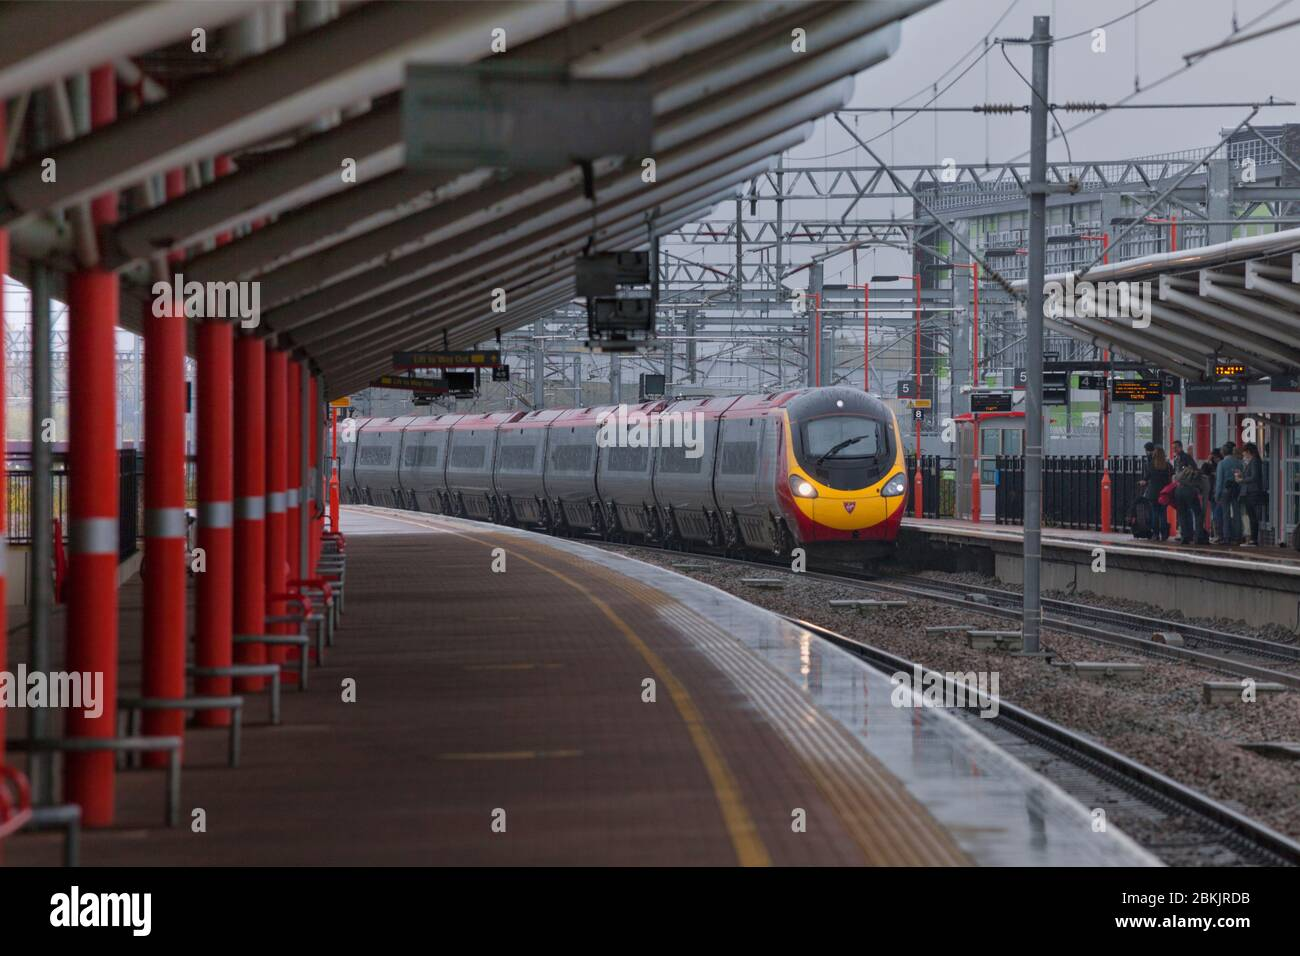 Virgin Trains Alstom class 390 Pendolino train passing Rugby railway station in the rain with the station canopy. Stock Photo